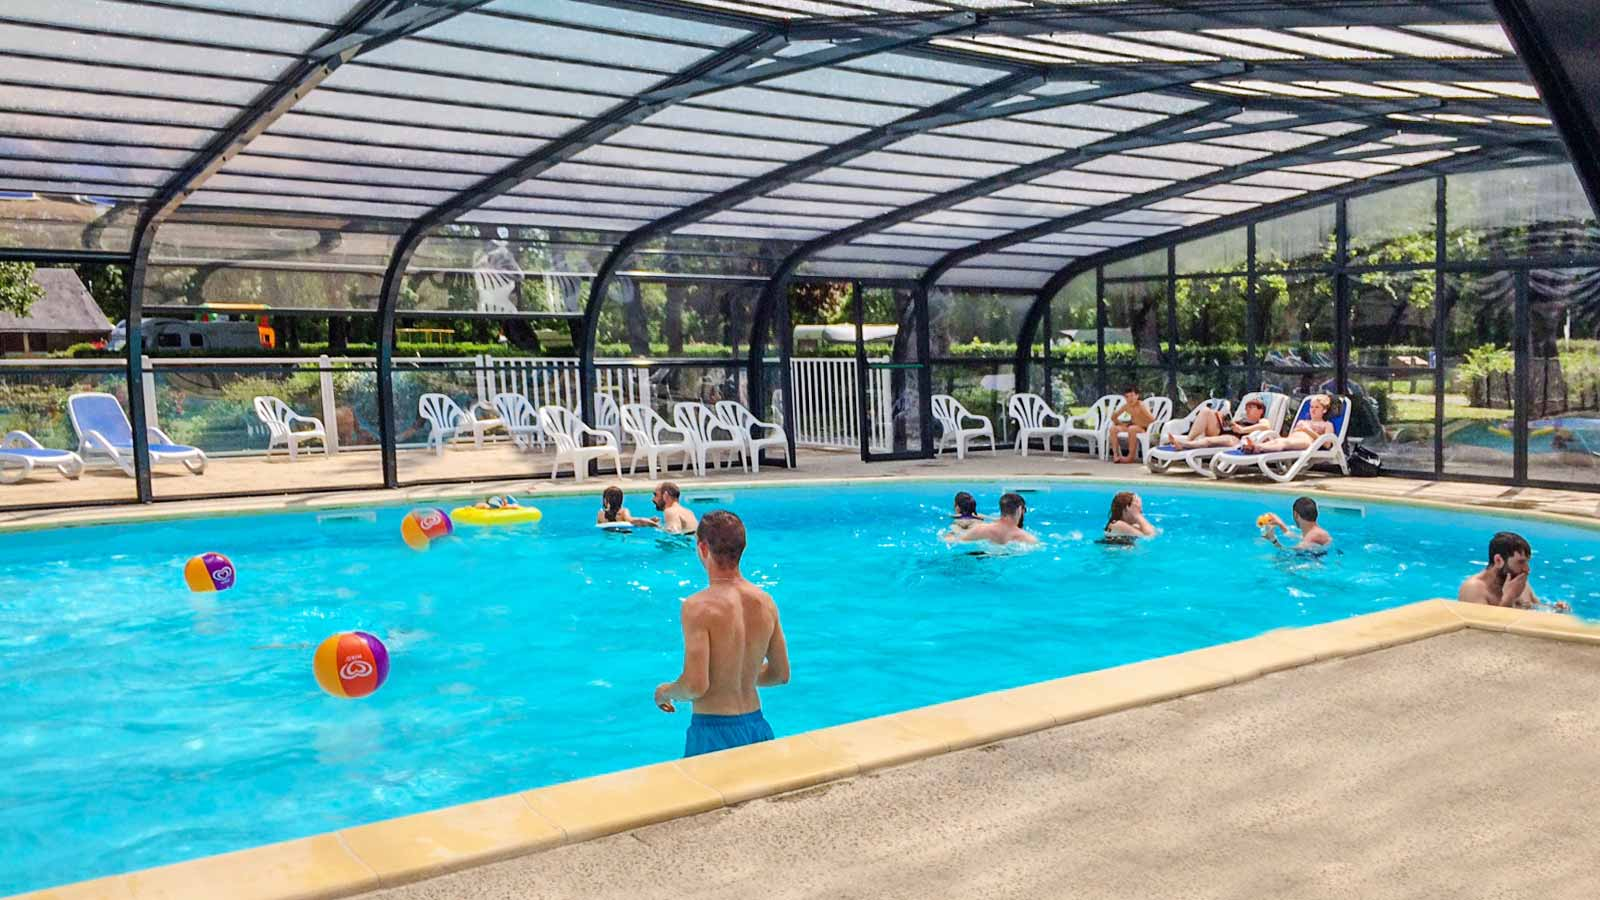 Camping la rochelle piscine couverte camping le for Piscine couverte